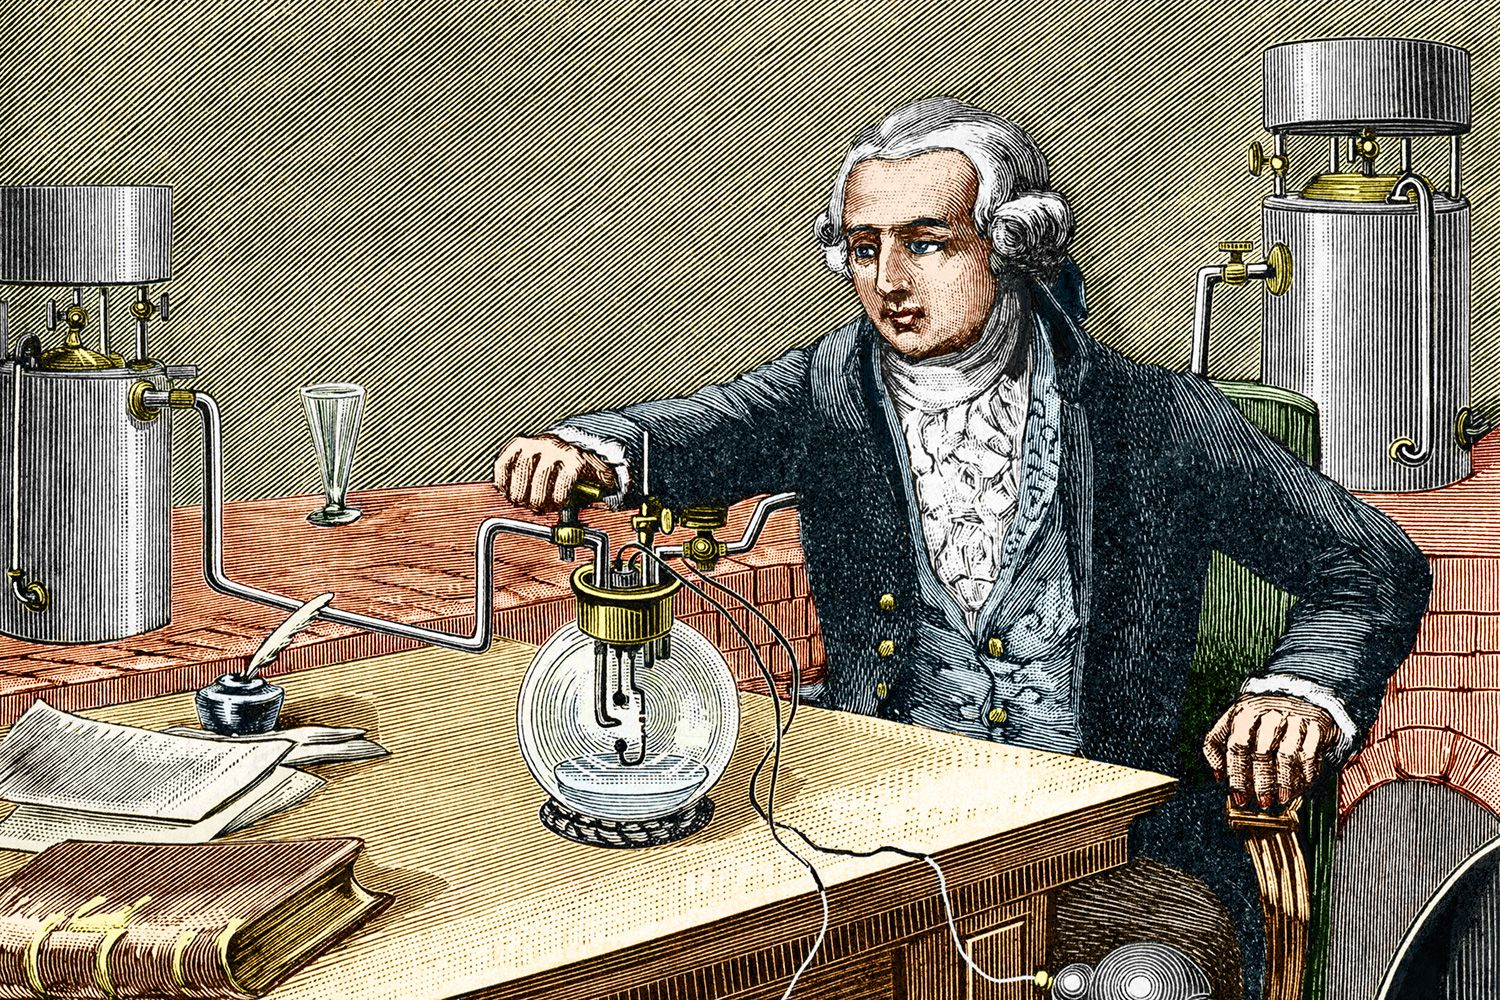 an introduction to the life and work of antoine laurent lavoisier Antoine-laurent lavoisier was born into academy of sciences for work on a new improved could no longer support either life or.